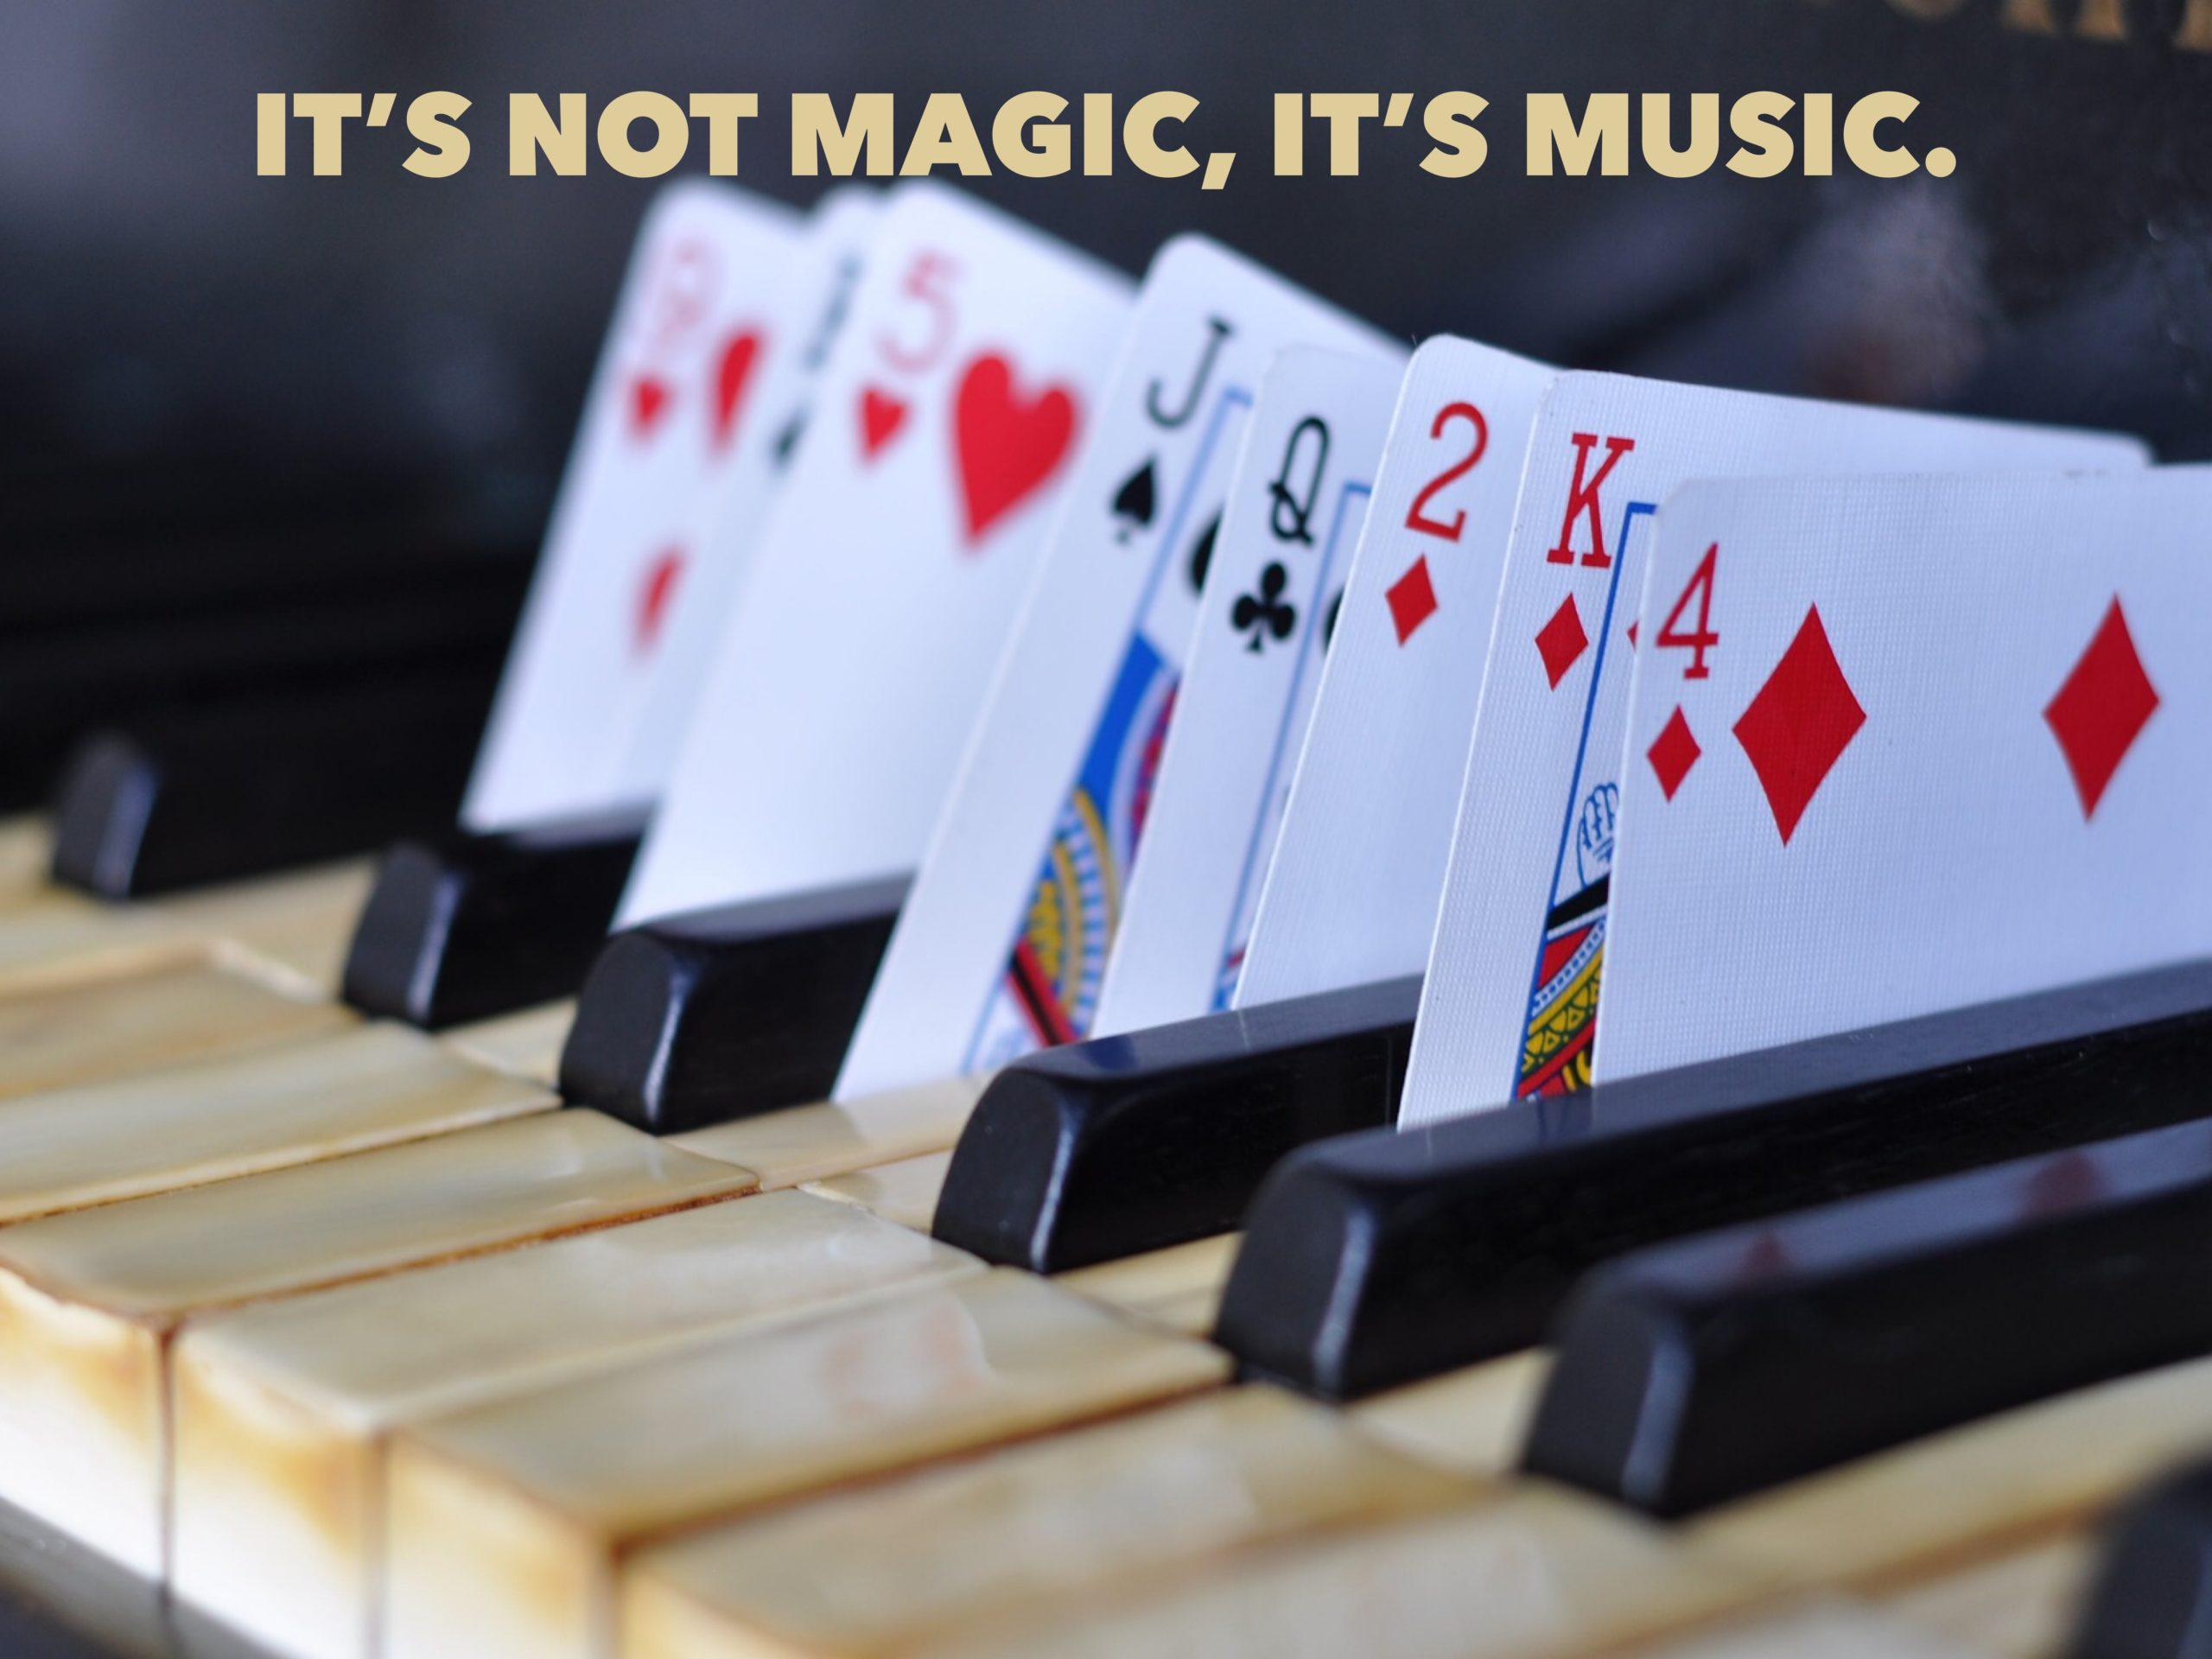 Music and Magic